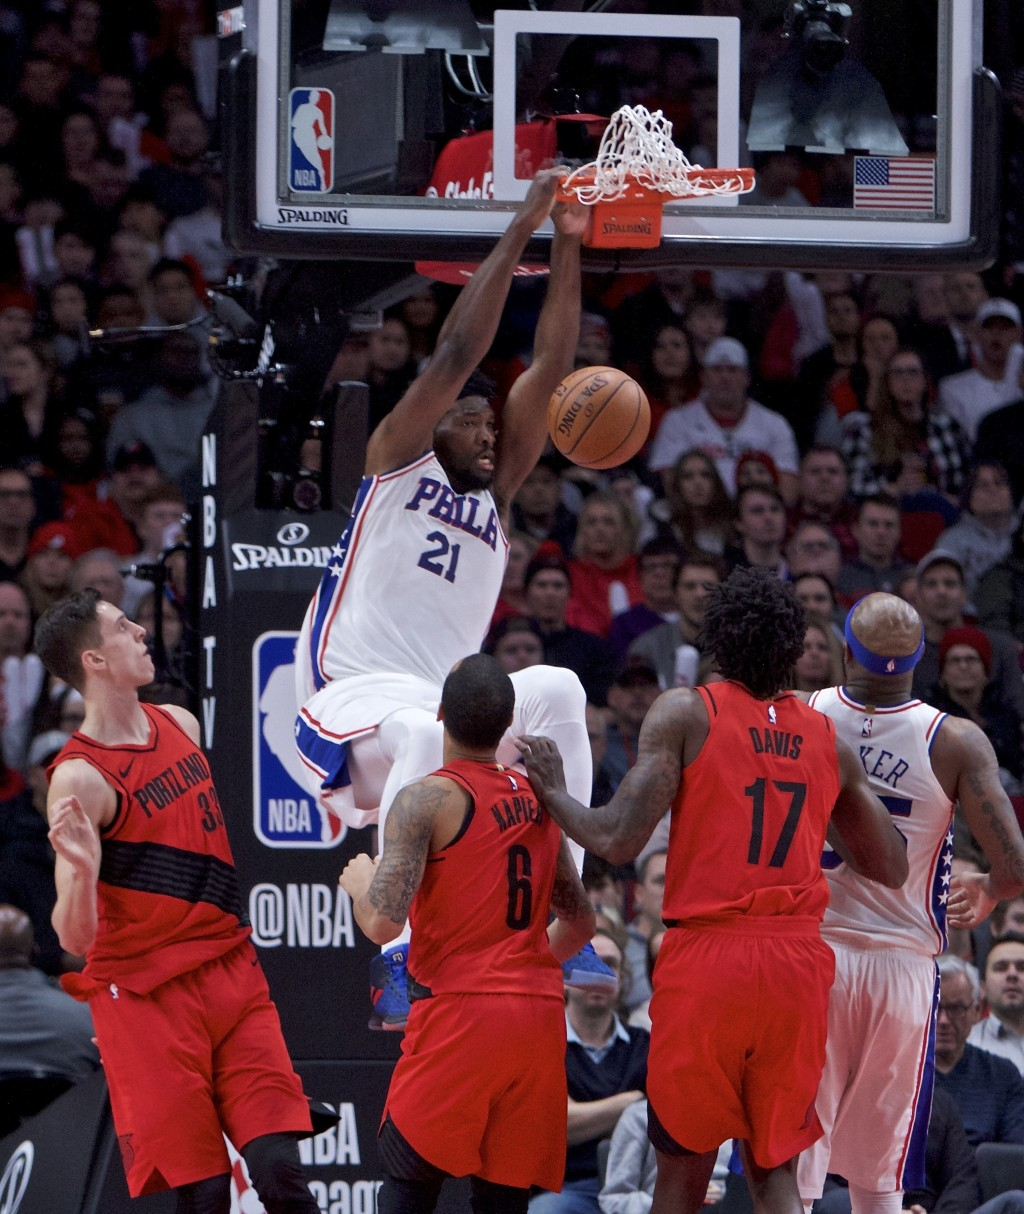 Philadelphia 76ers center Joel Embiid, center, dunks against the Portland Trail Blazers during the first half of an NBA basketball game in Portland, O...